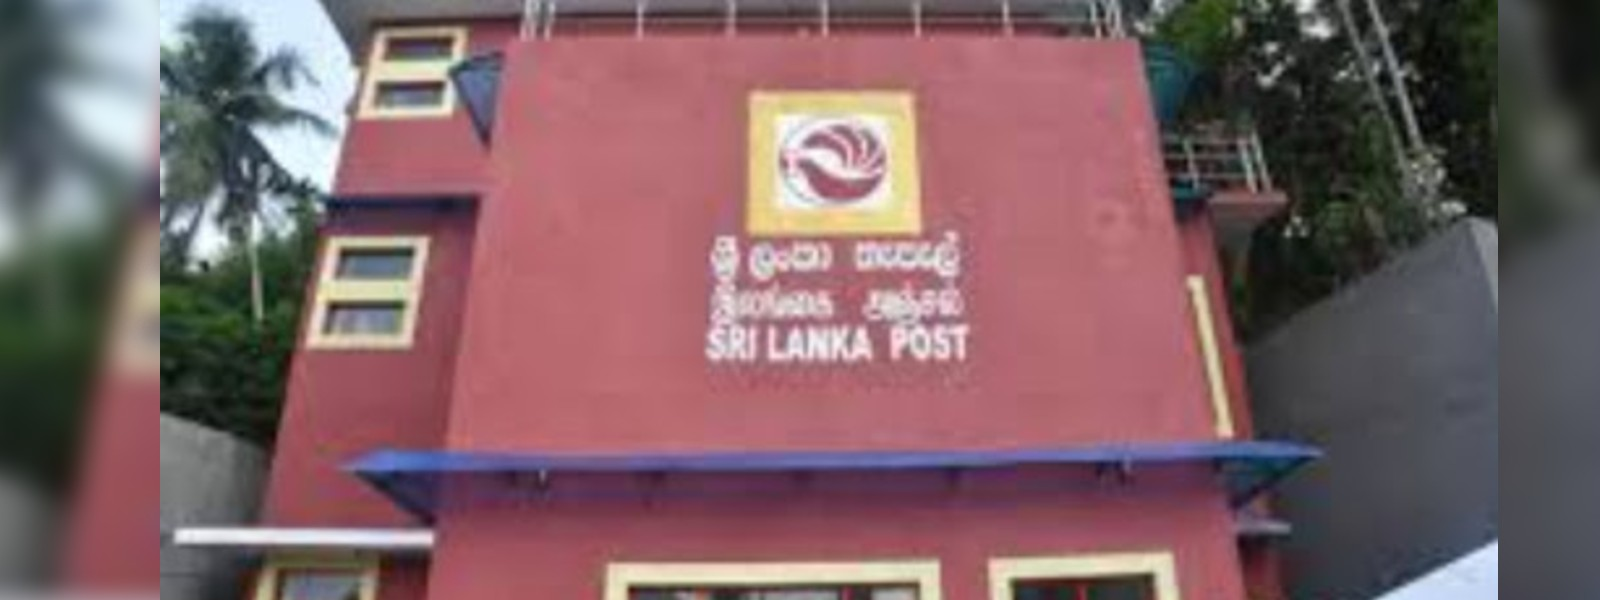 All post offices closed today